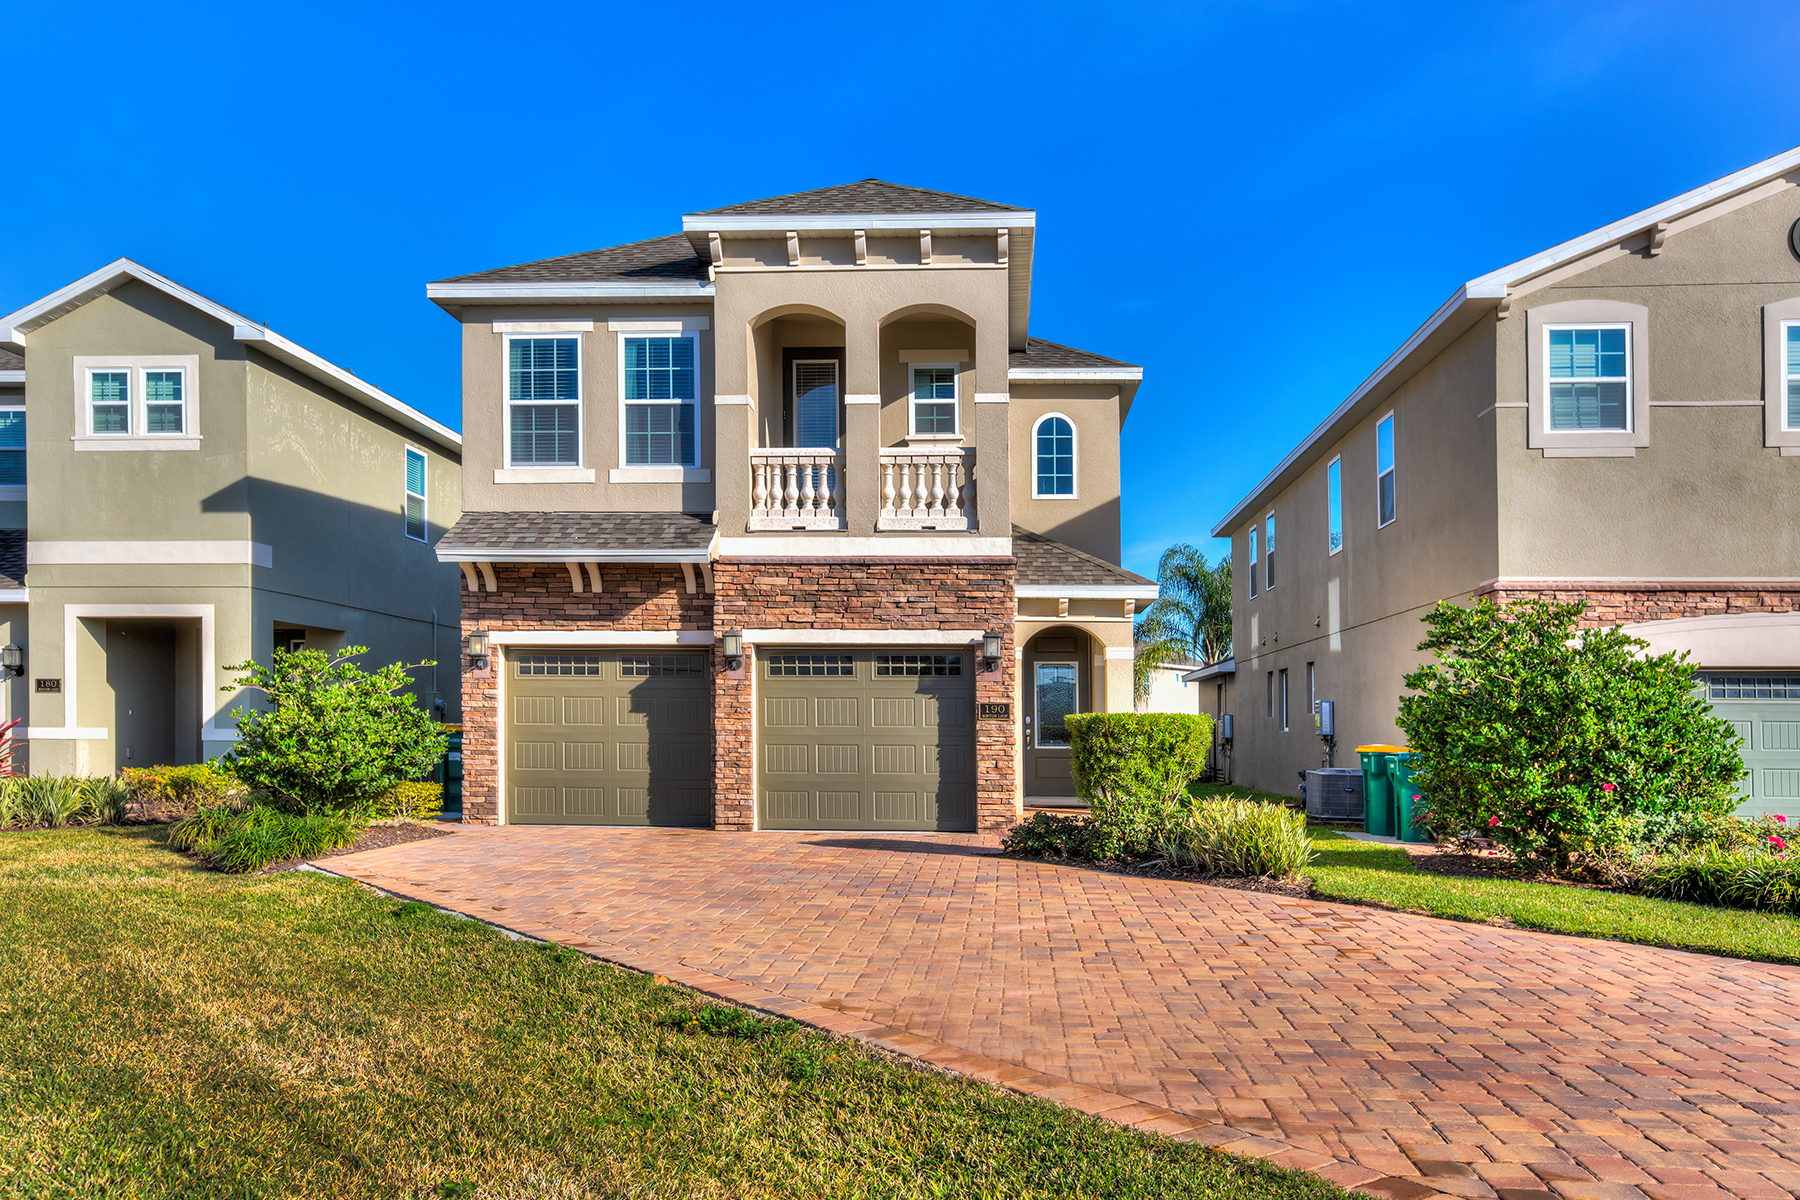 Single Family Homes for Sale at ORLANDO 190 Minton Loop Kissimmee, Florida 34747 United States